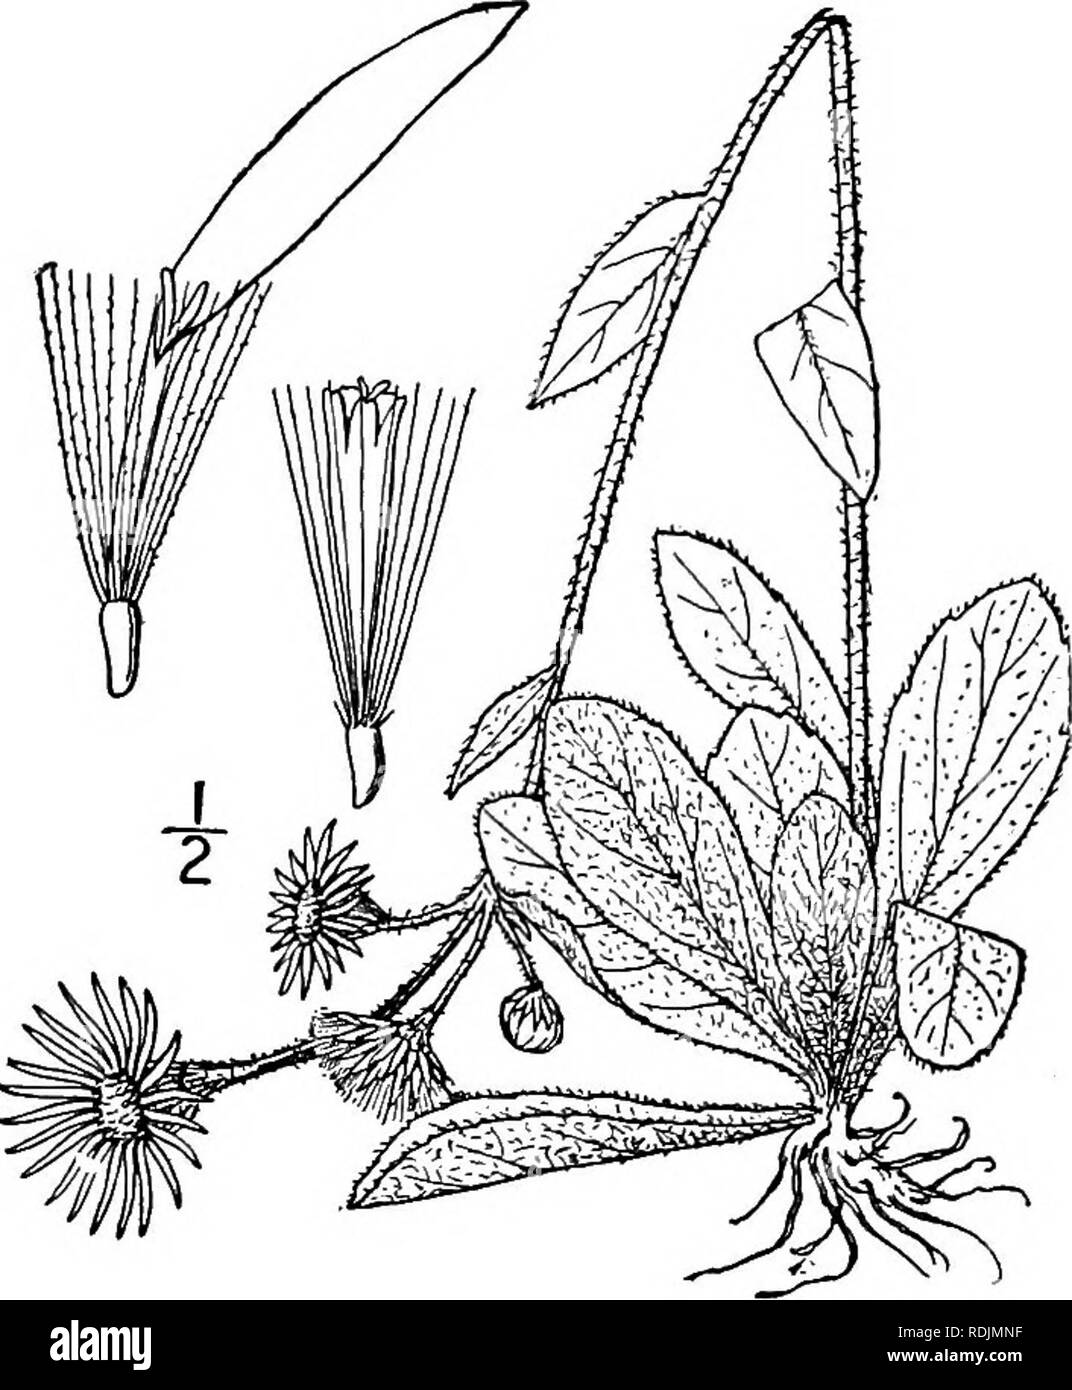 . An illustrated flora of the northern United States, Canada and the British possessions, from Newfoundland to the parallel of the southern boundary of Virginia, and from the Atlantic Ocean westward to the 102d meridian. Botany; Botany. Genus 35. THISTLE FAMILY. 439 g. Erigeron pulchellus Michx. Robin's or Poor Robin's Plantain. Fig. 4369. E. pulchellus Michx. Fl. Bor. Am. 2: 124. 1803. E. bellidifolius Muhl.; Willd. Sp. PI. 3 : 1958. 1804. Perennial by stolons and offsets, villous- pubescent; stems simple, slender, io'-24' high. Basal leaves tufted, spatulate or obovate, somewhat cuneate at t Stock Photo